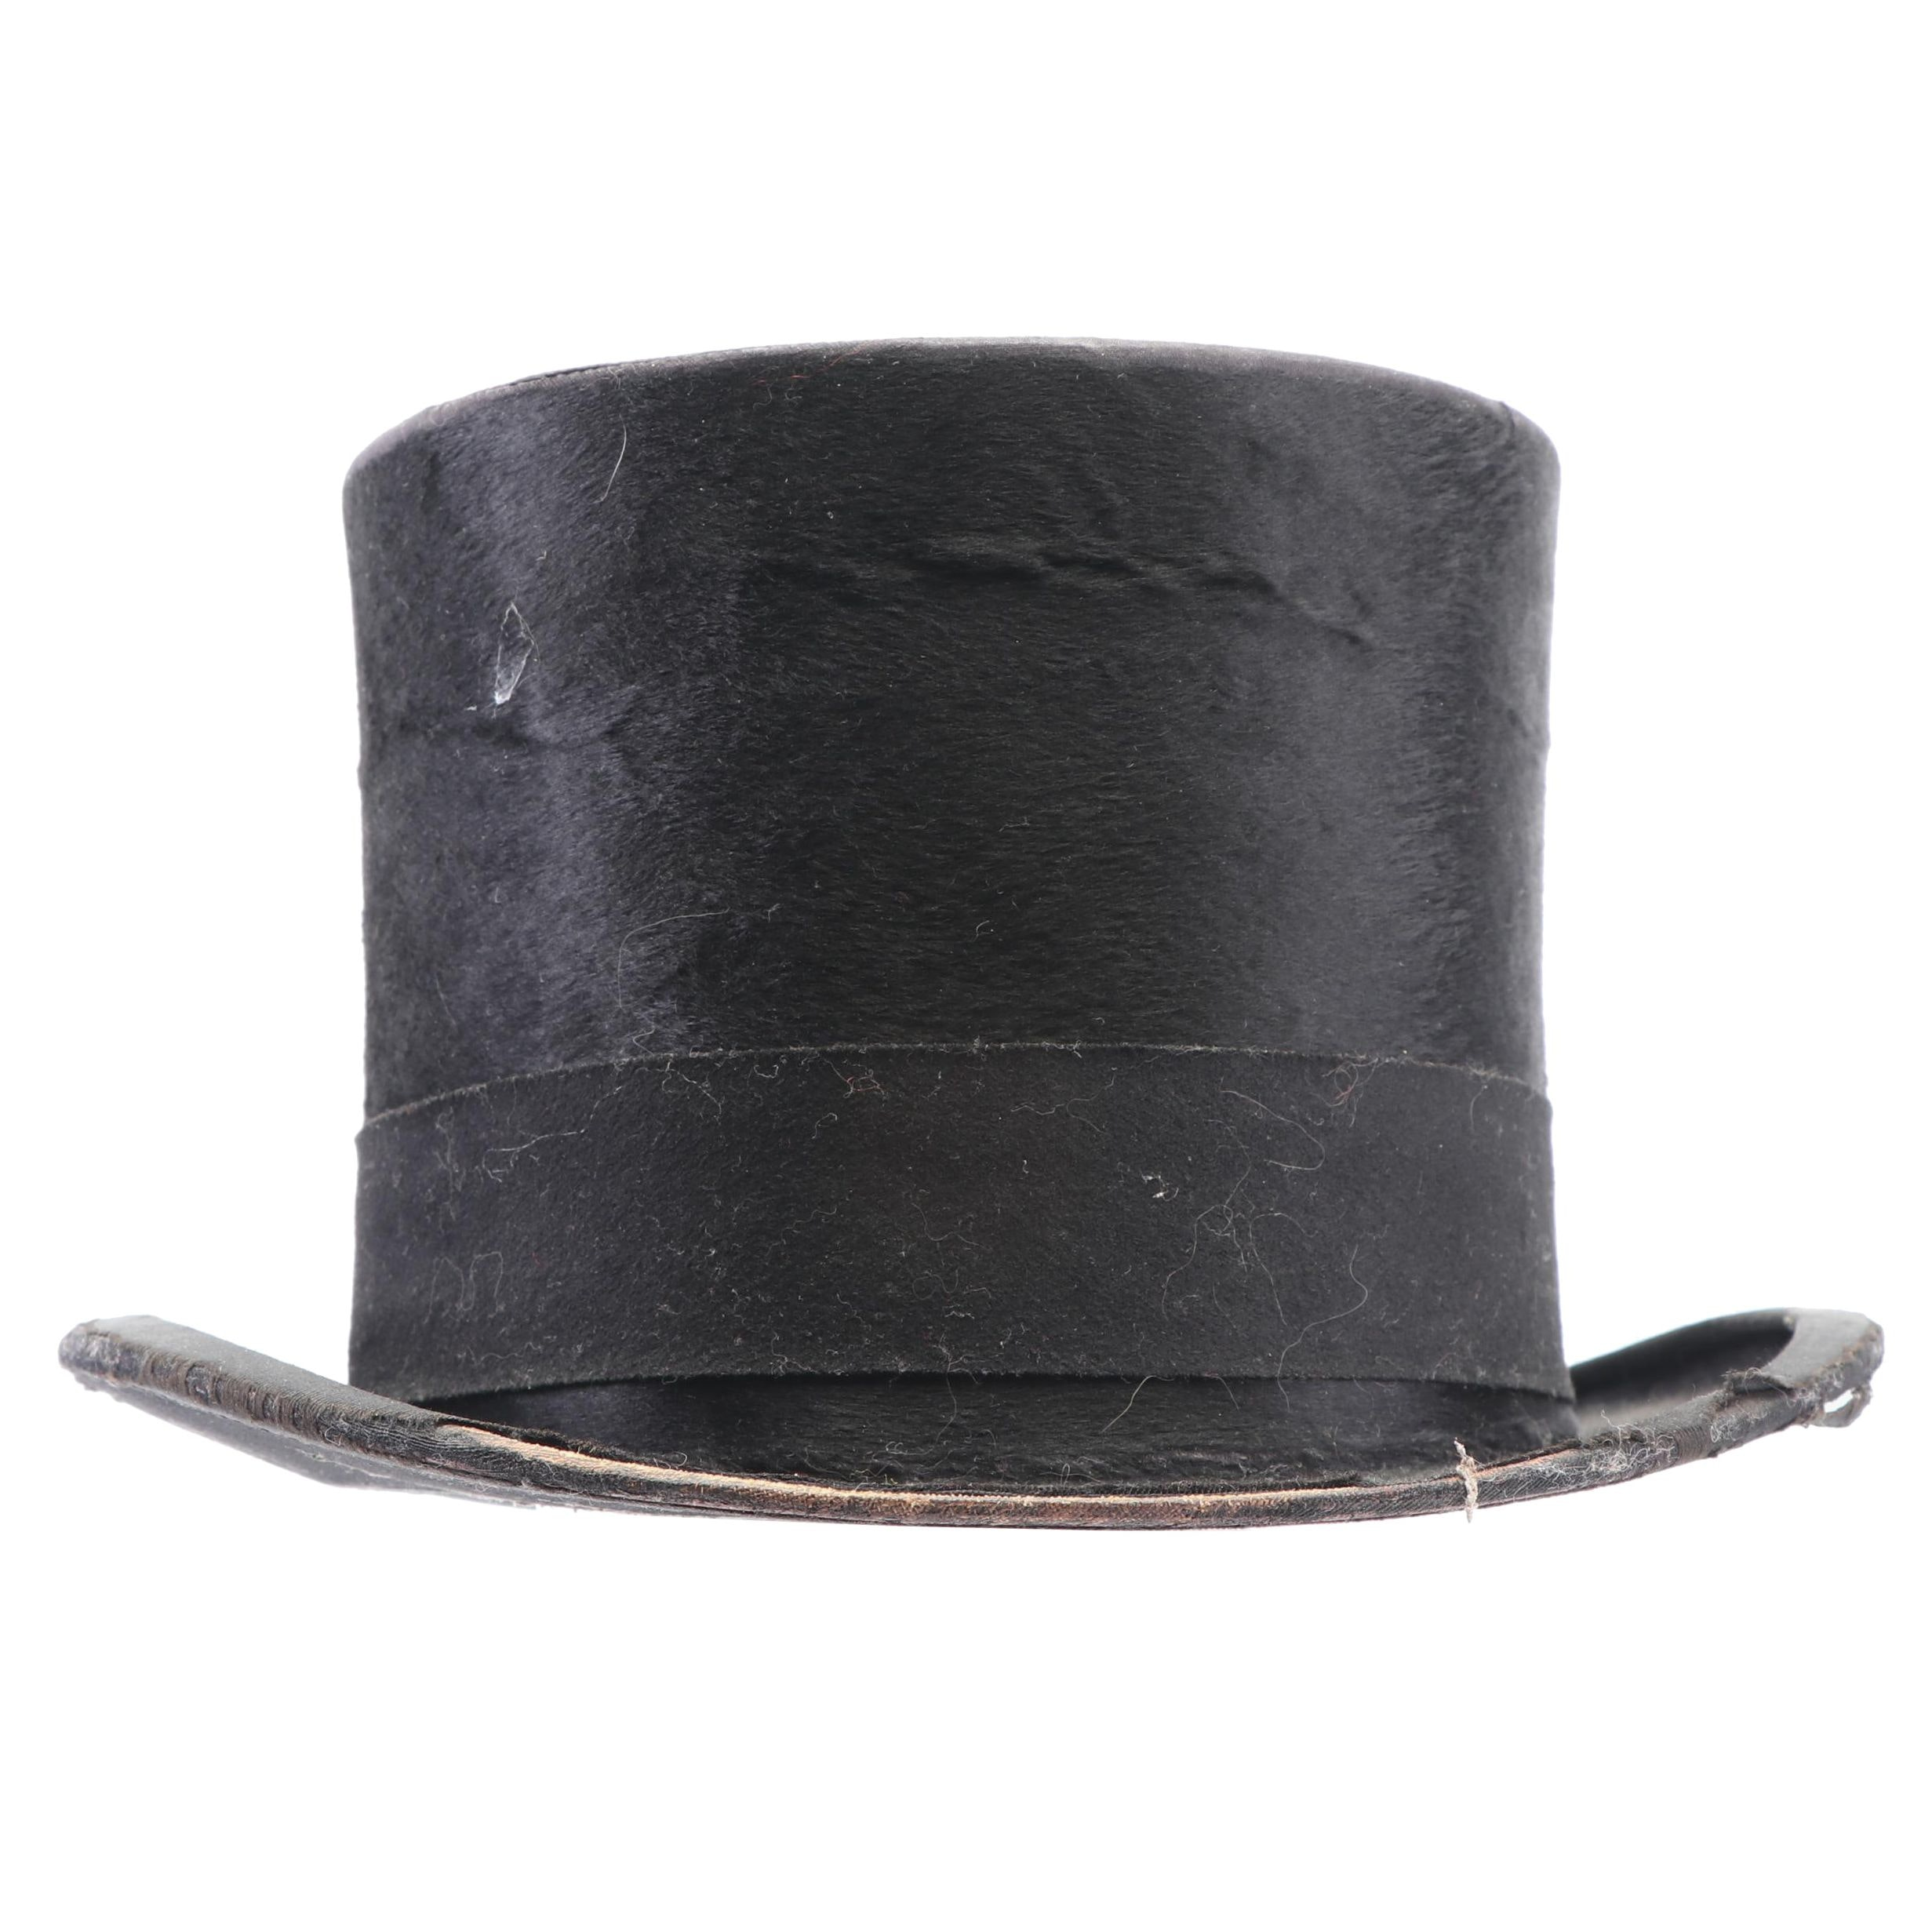 Men's Delion Silk Plush Top Hat, Early 20th Century